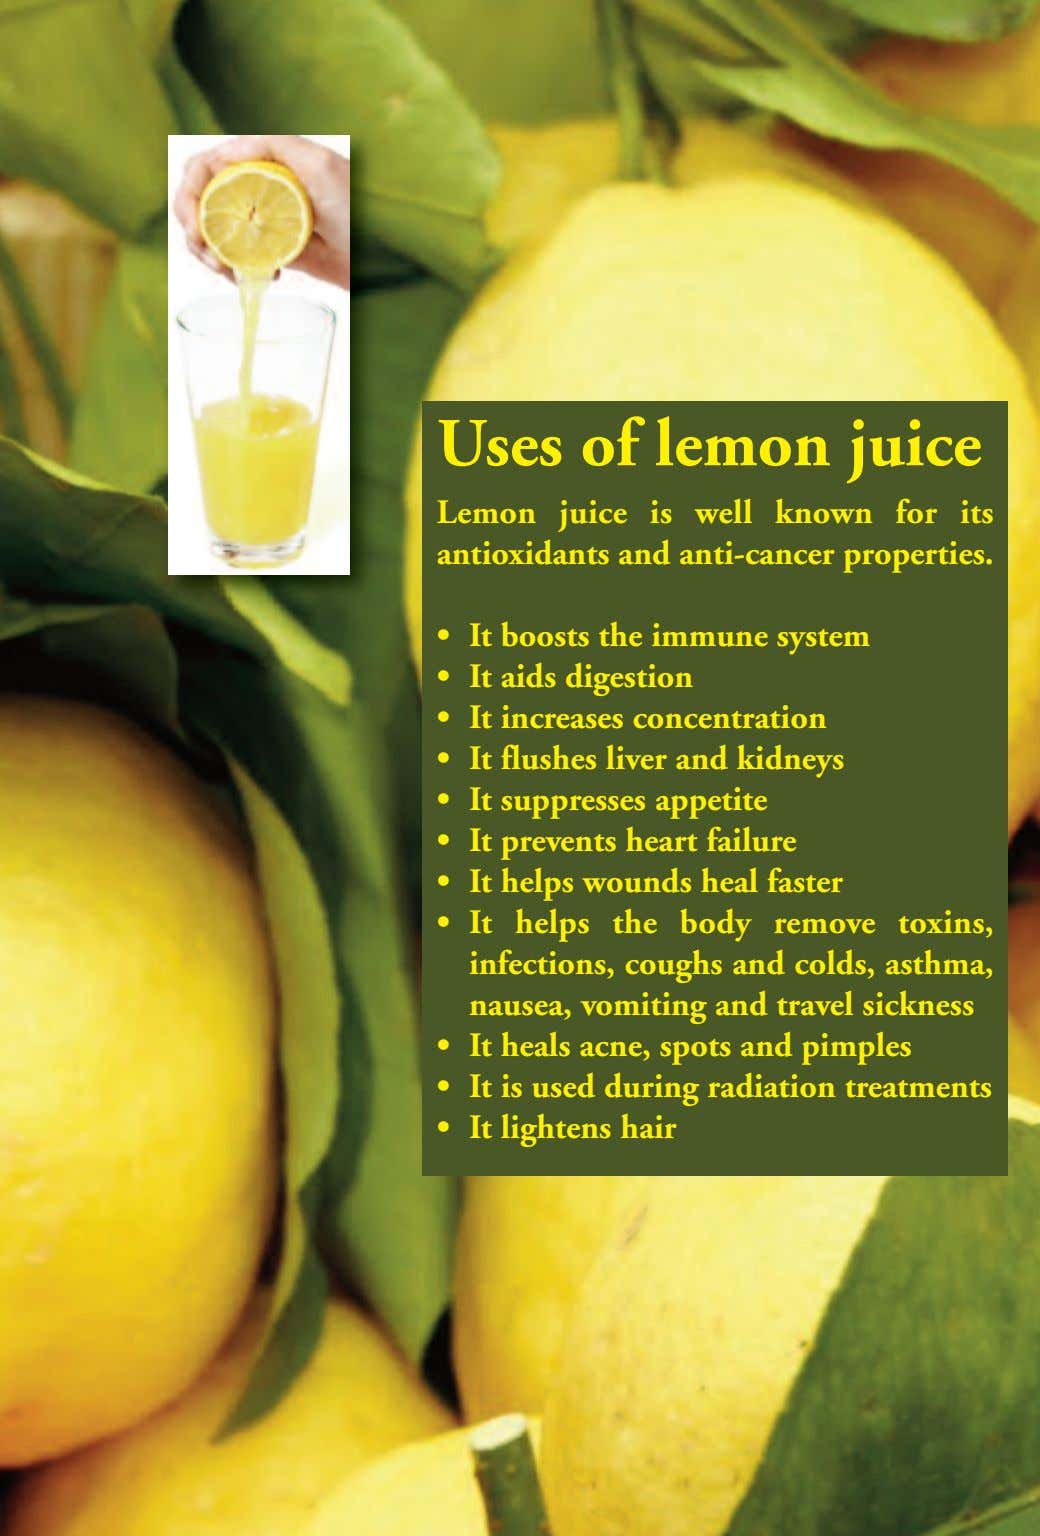 Uses of lemon juice Lemon juice is well known for its antioxidants and anti-cancer properties.